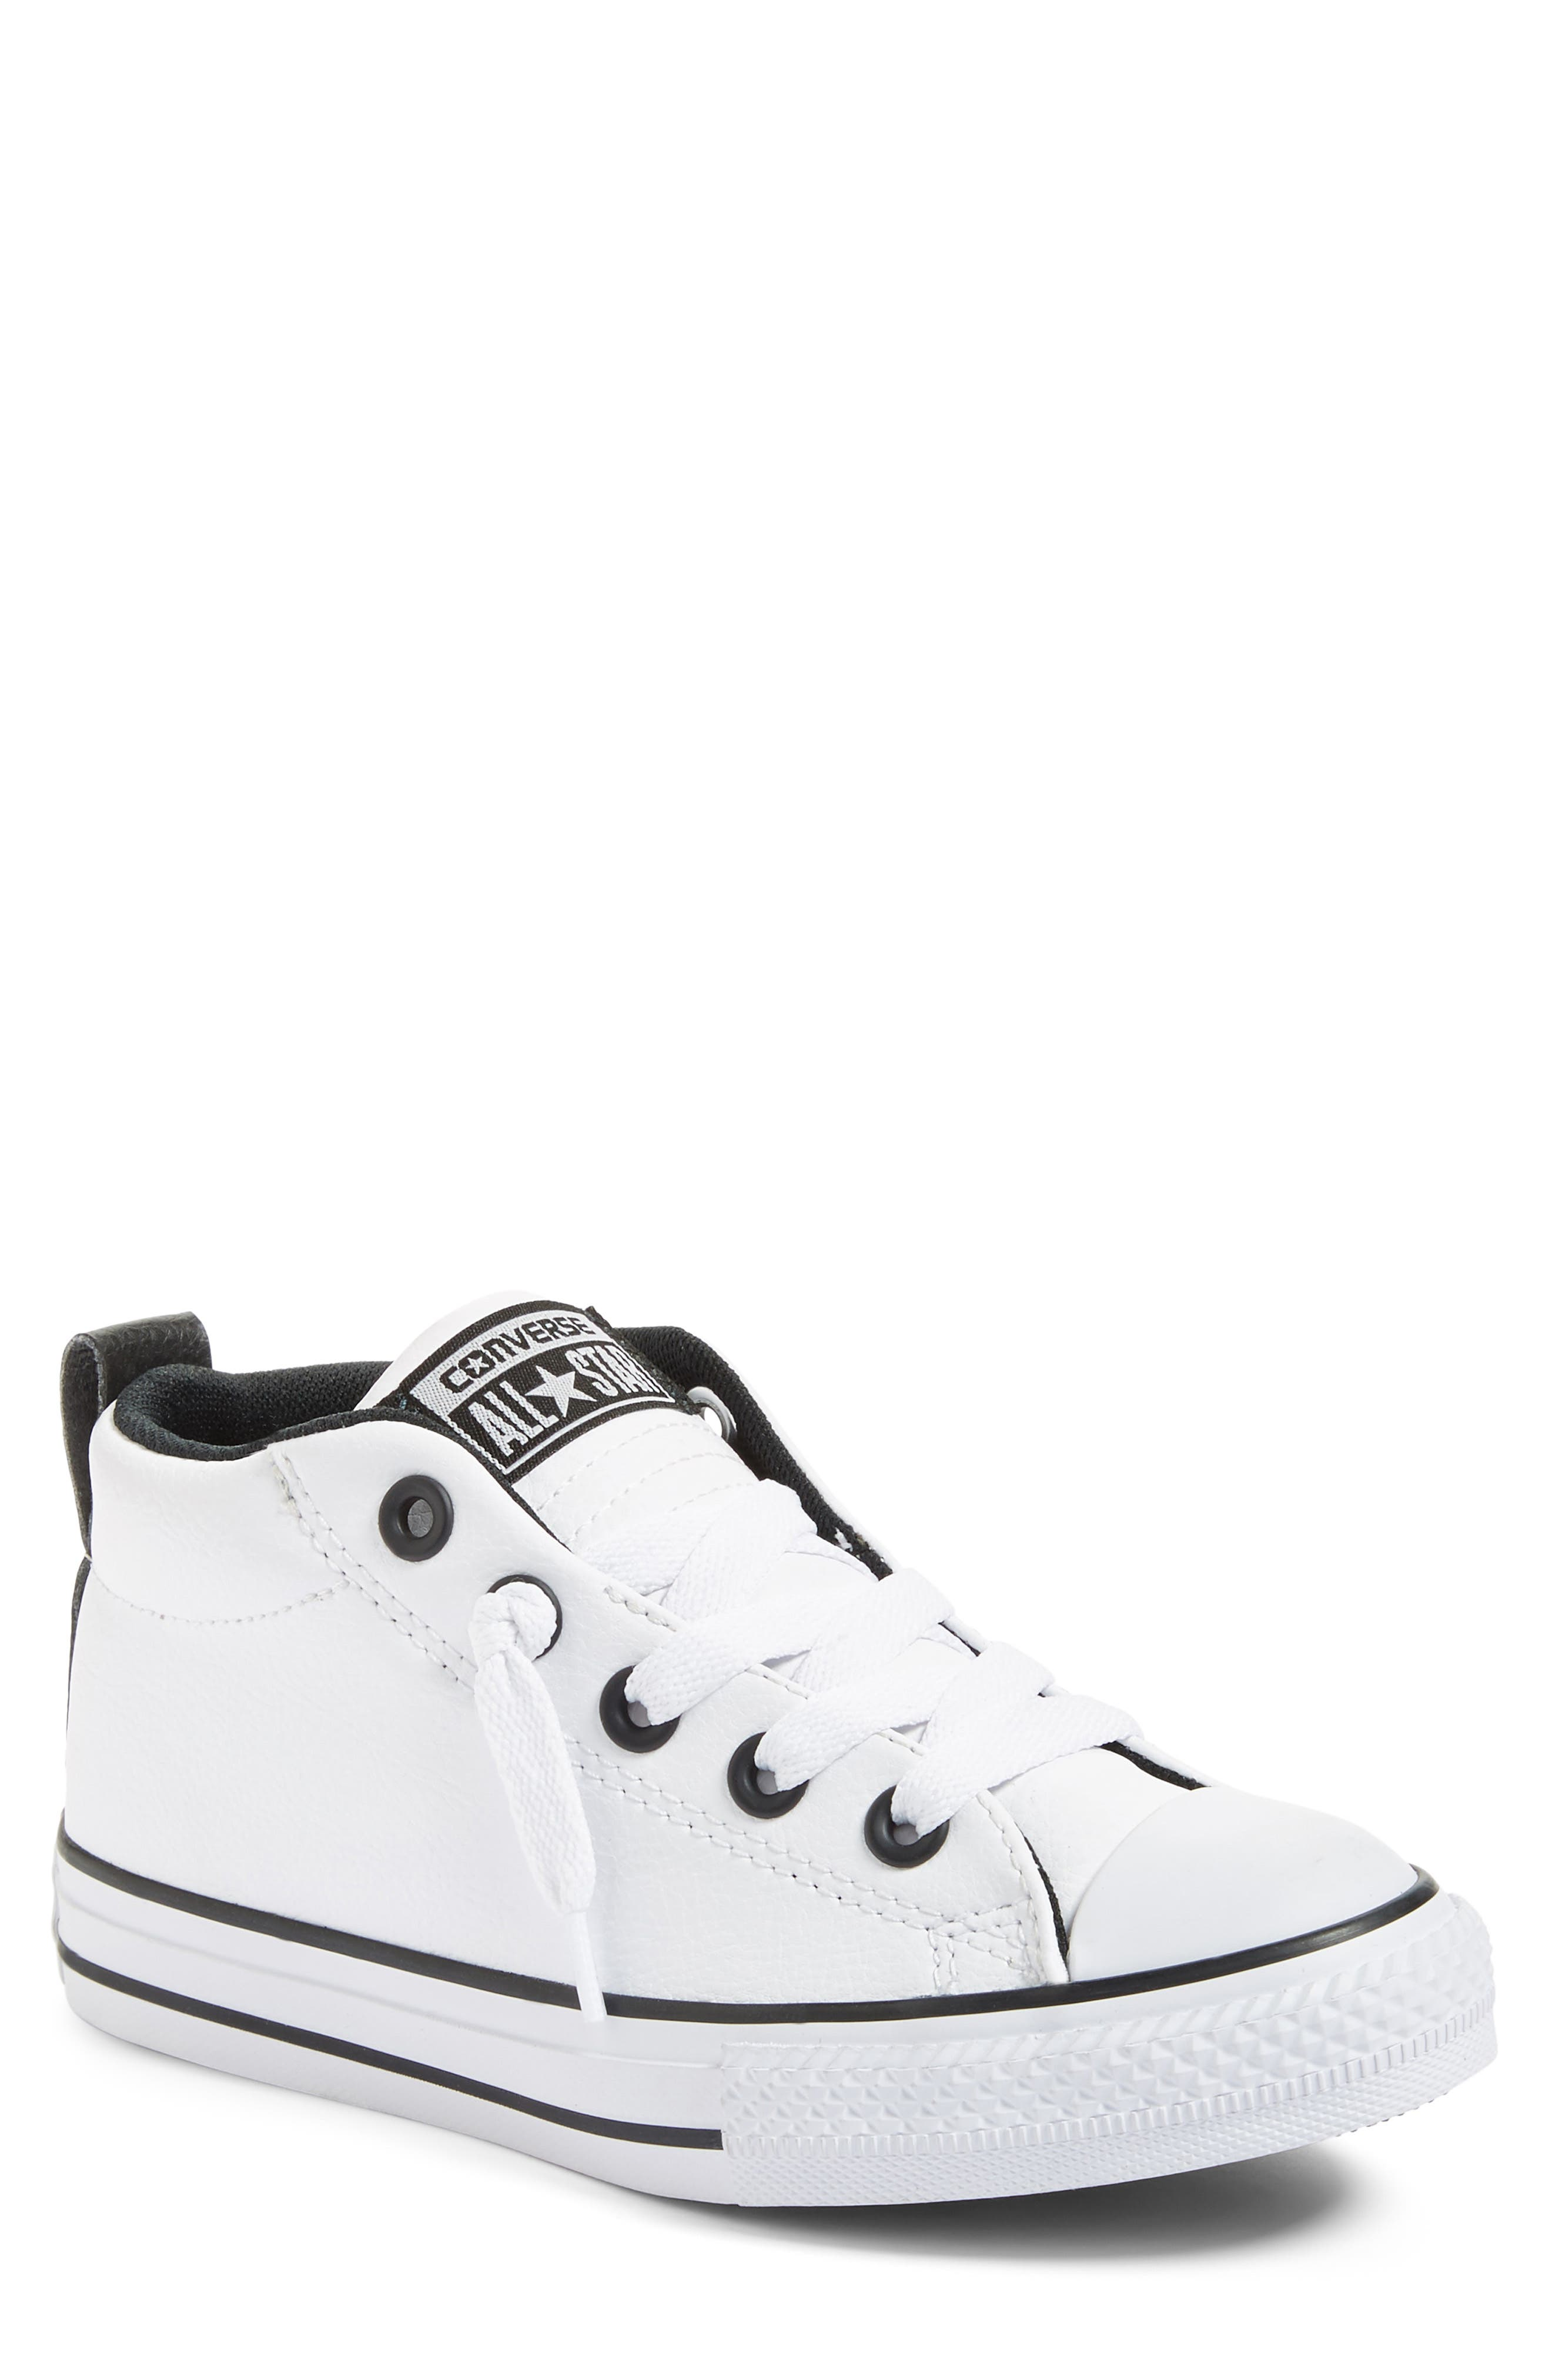 Chuck Taylor<sup>®</sup> All Star<sup>®</sup> Mid High Sneaker,                         Main,                         color, White/ Black